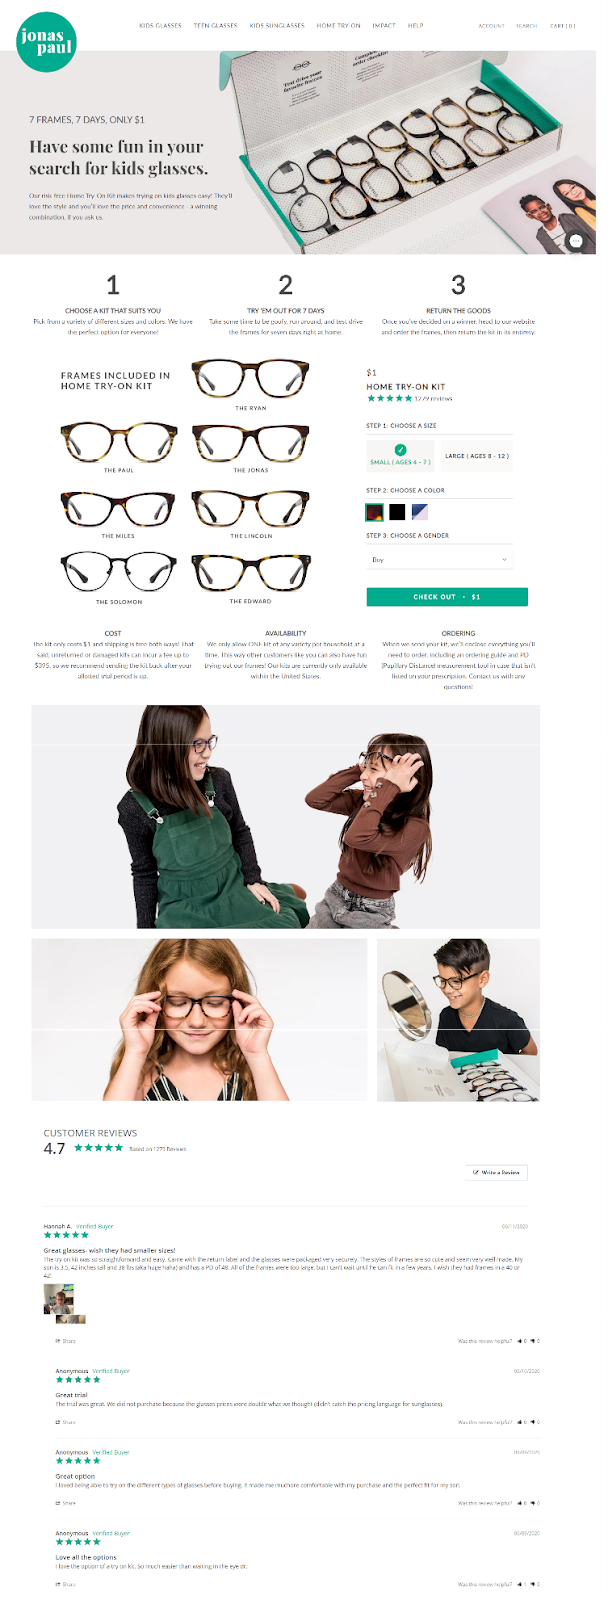 increase website sales - eyeglasses product page